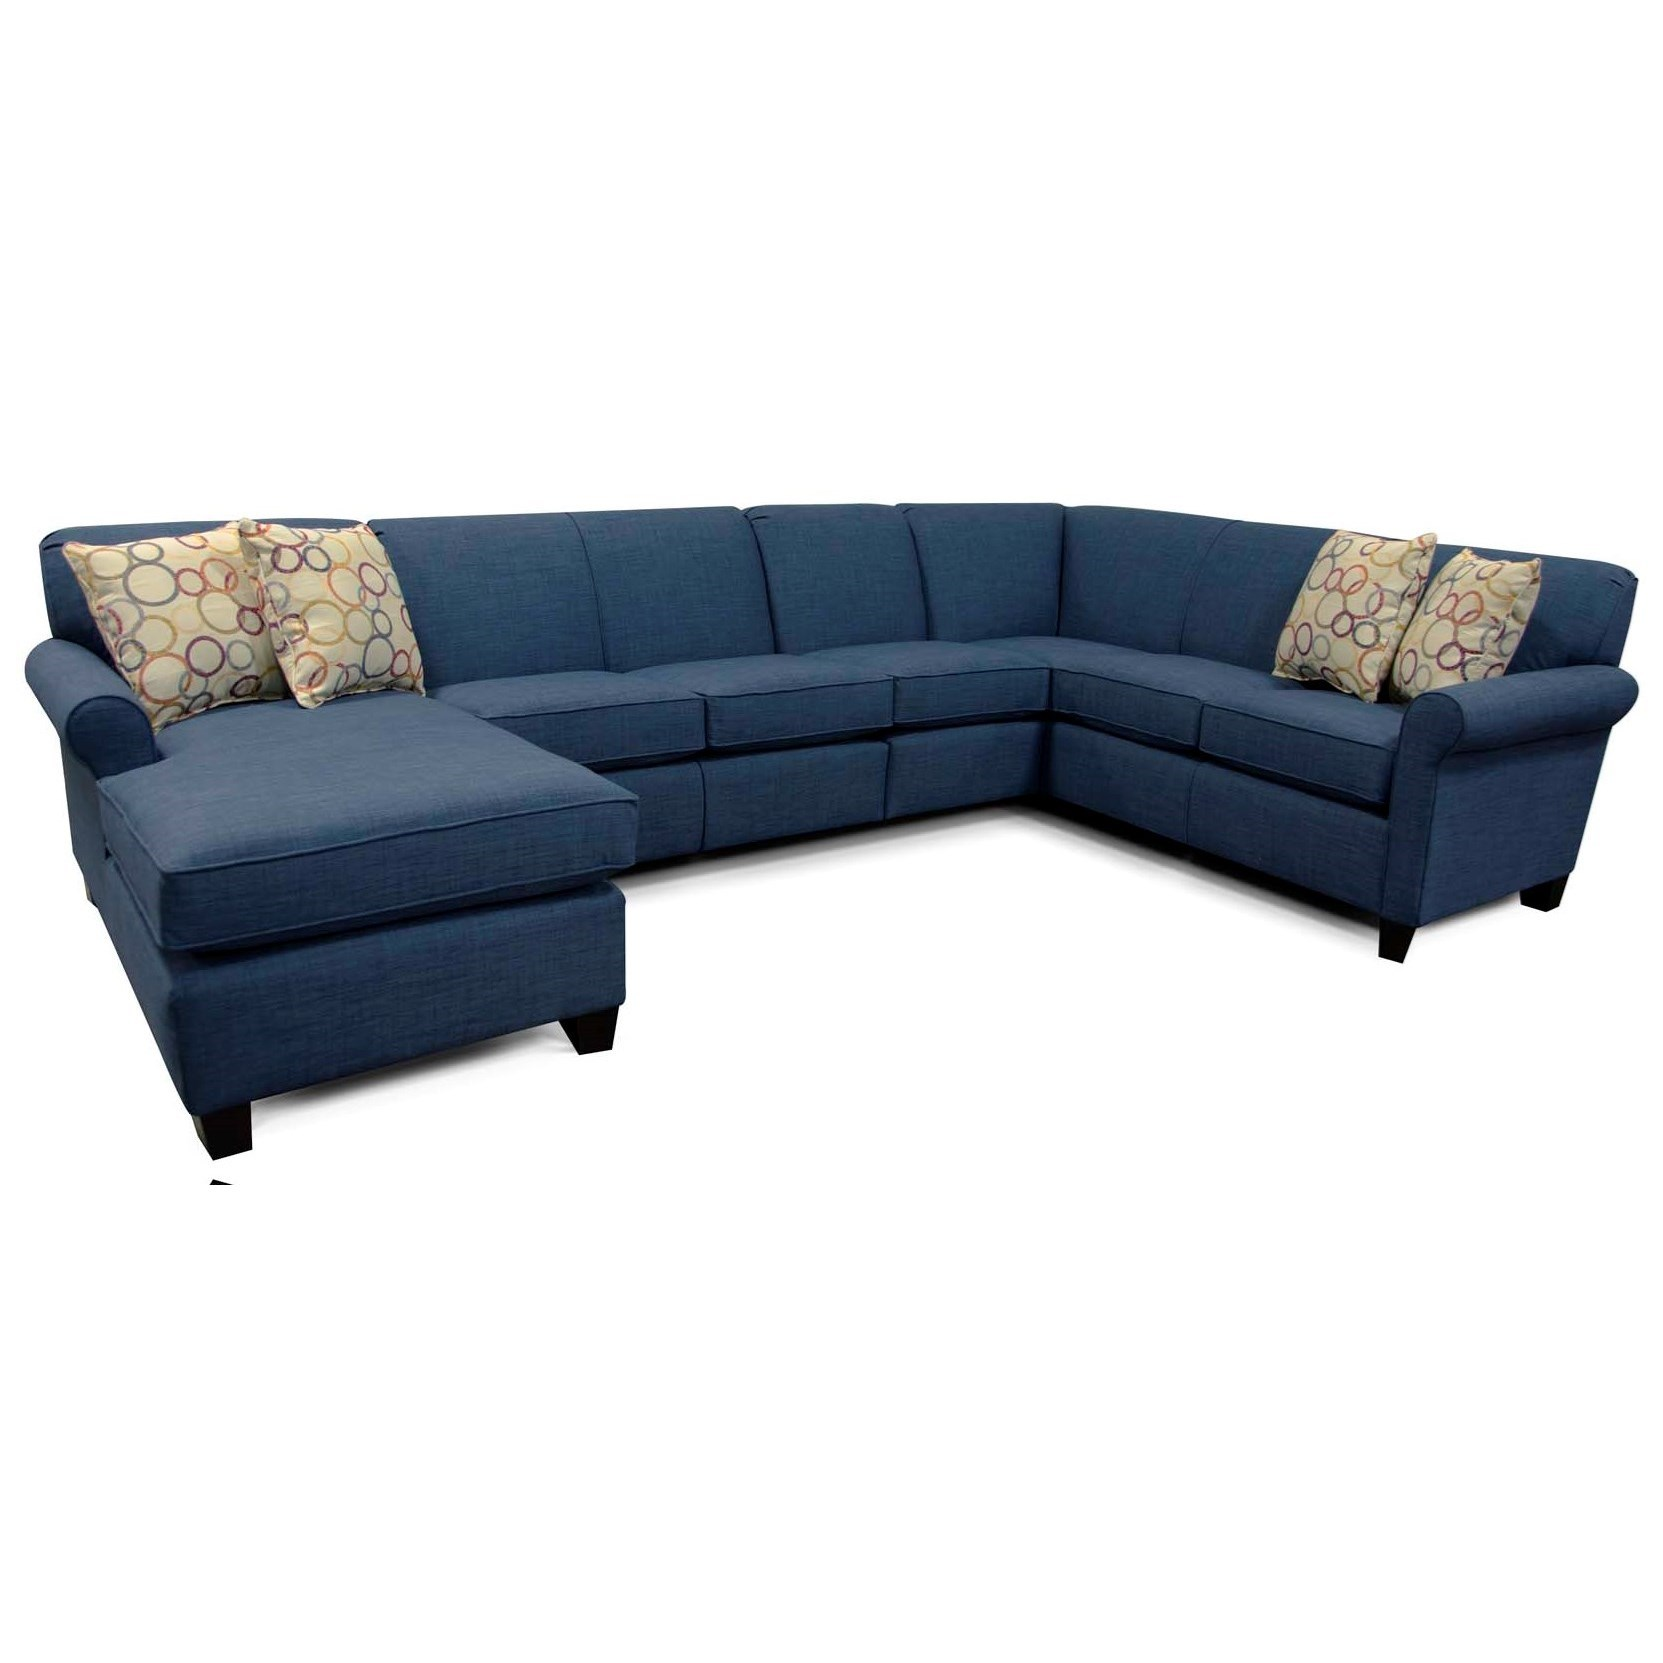 England angie sectional sofa with 6 seats and chaise for 6 piece sectional sofa uk